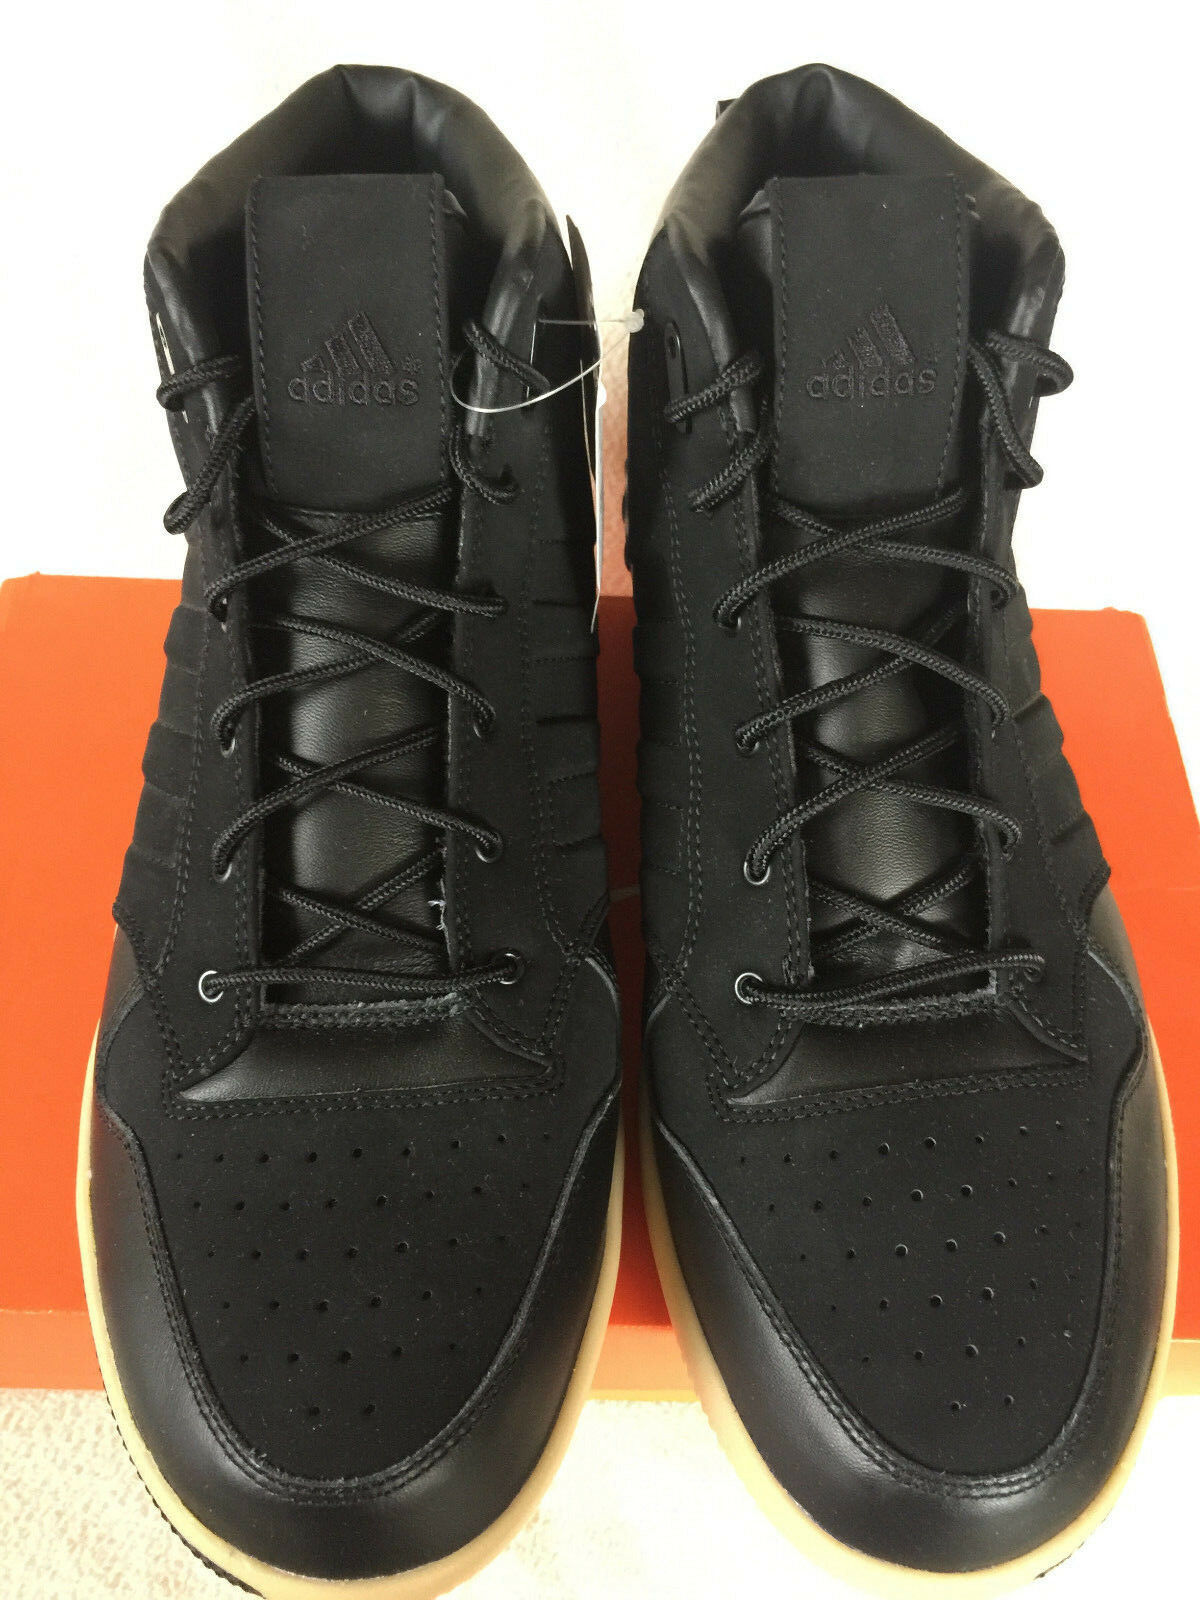 Adidas Lux Mid Mid Mid 677620 Luxury Gum Black Leather Basketball shoes Men's 11.5 new 622491